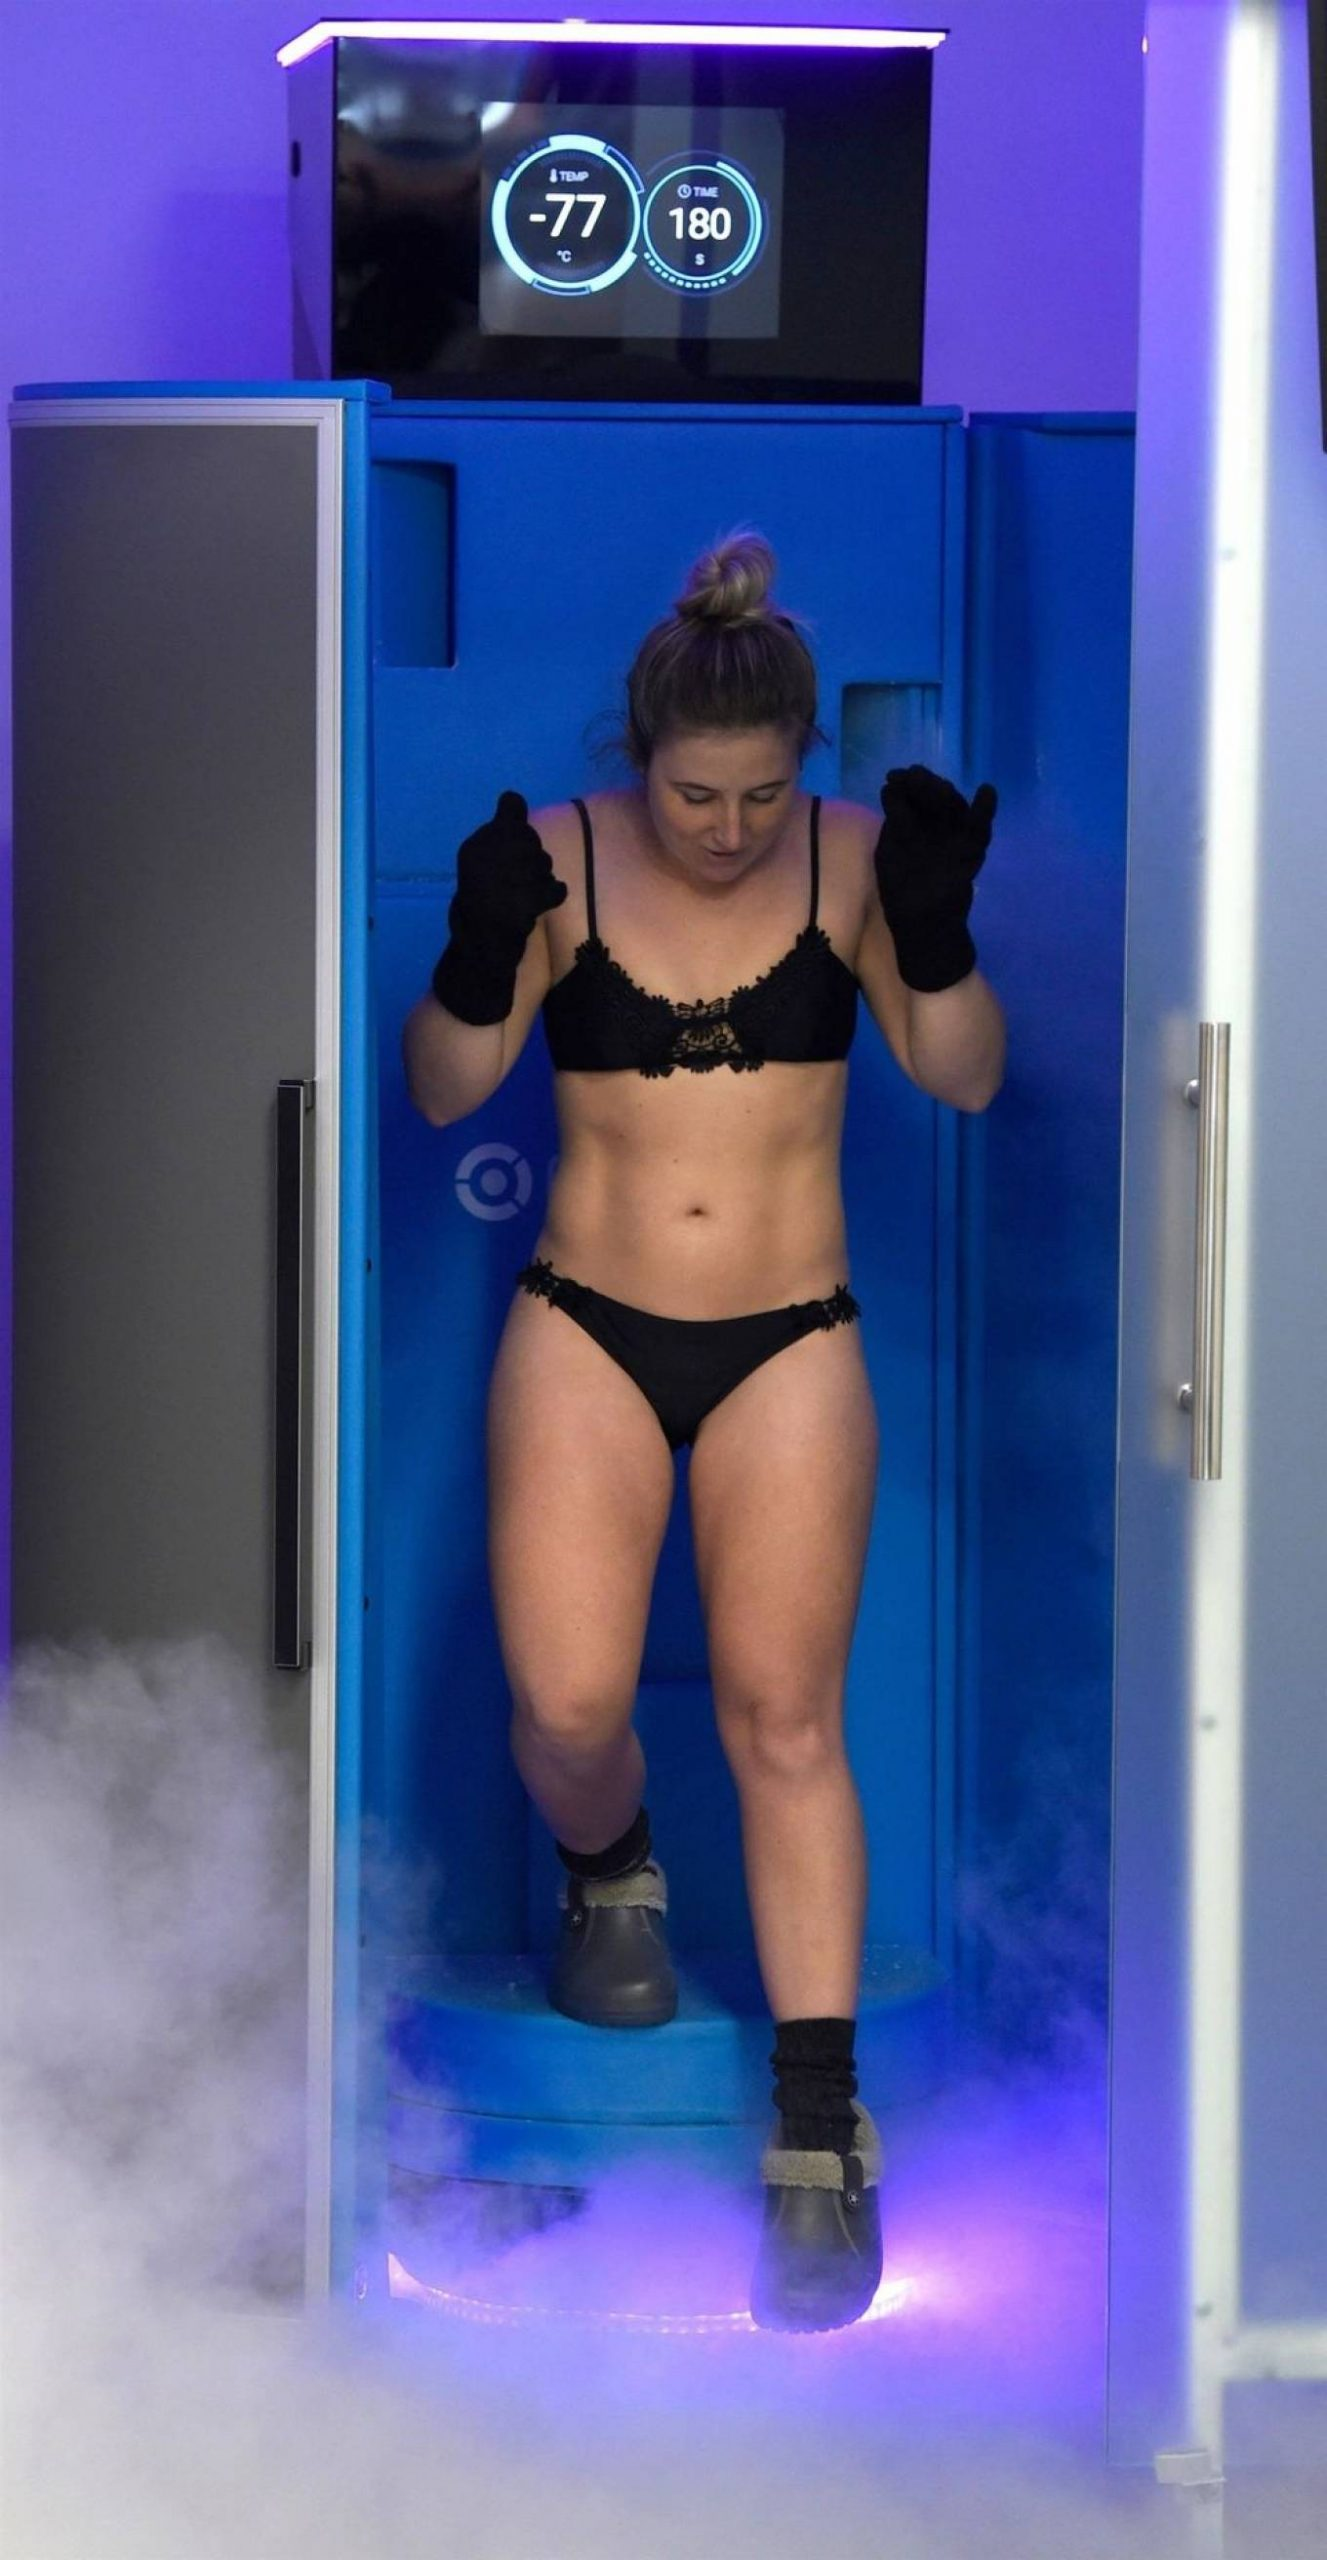 Jazmine-Franks---Pictured-at-the-Cryo-Lab-in-Manchester-18-scaled.jpg